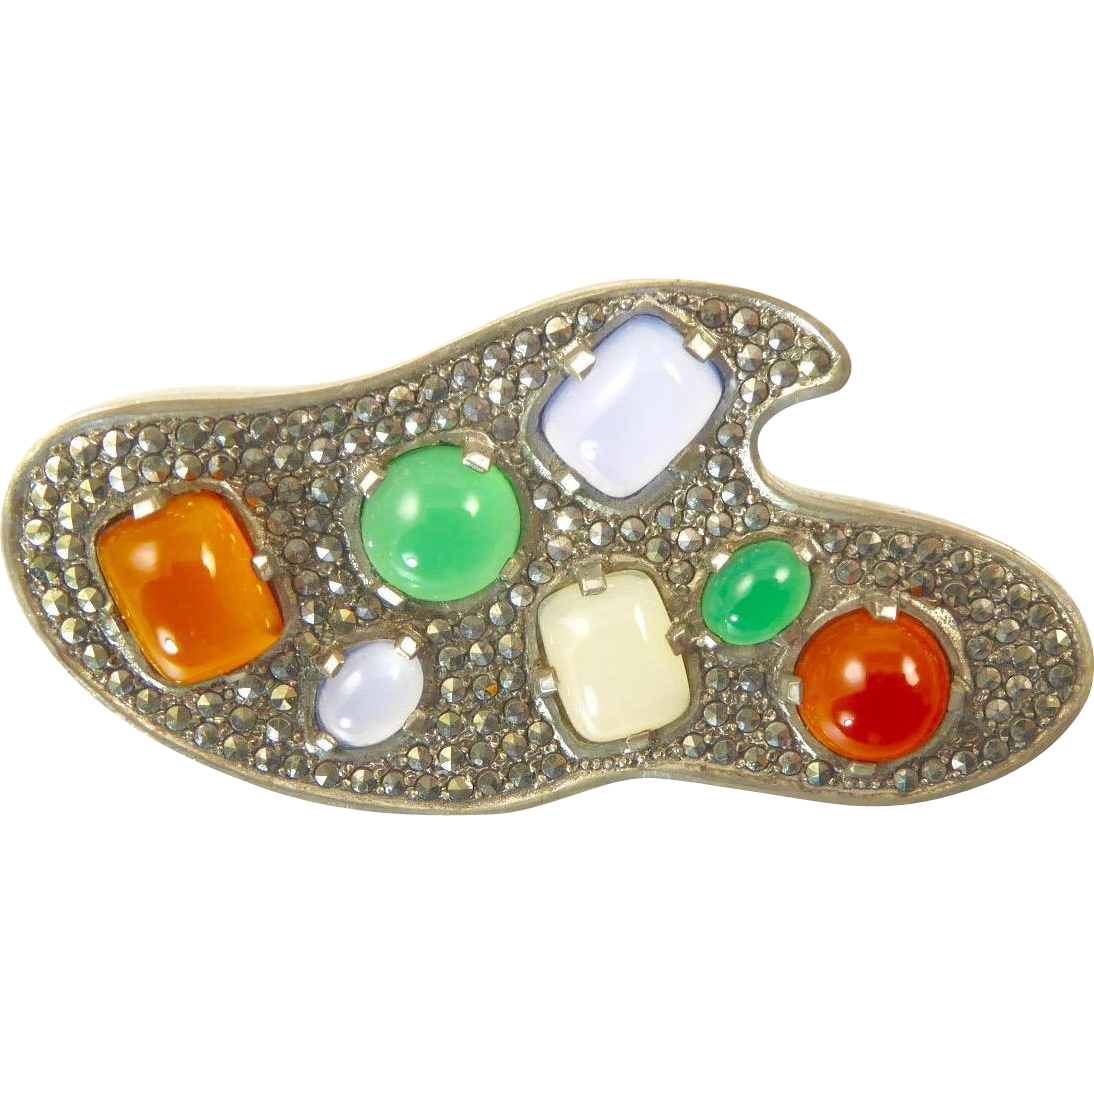 Modernist Silver Brooch with Chrysoprase, Chalcedony, Carnelian and Marcasites